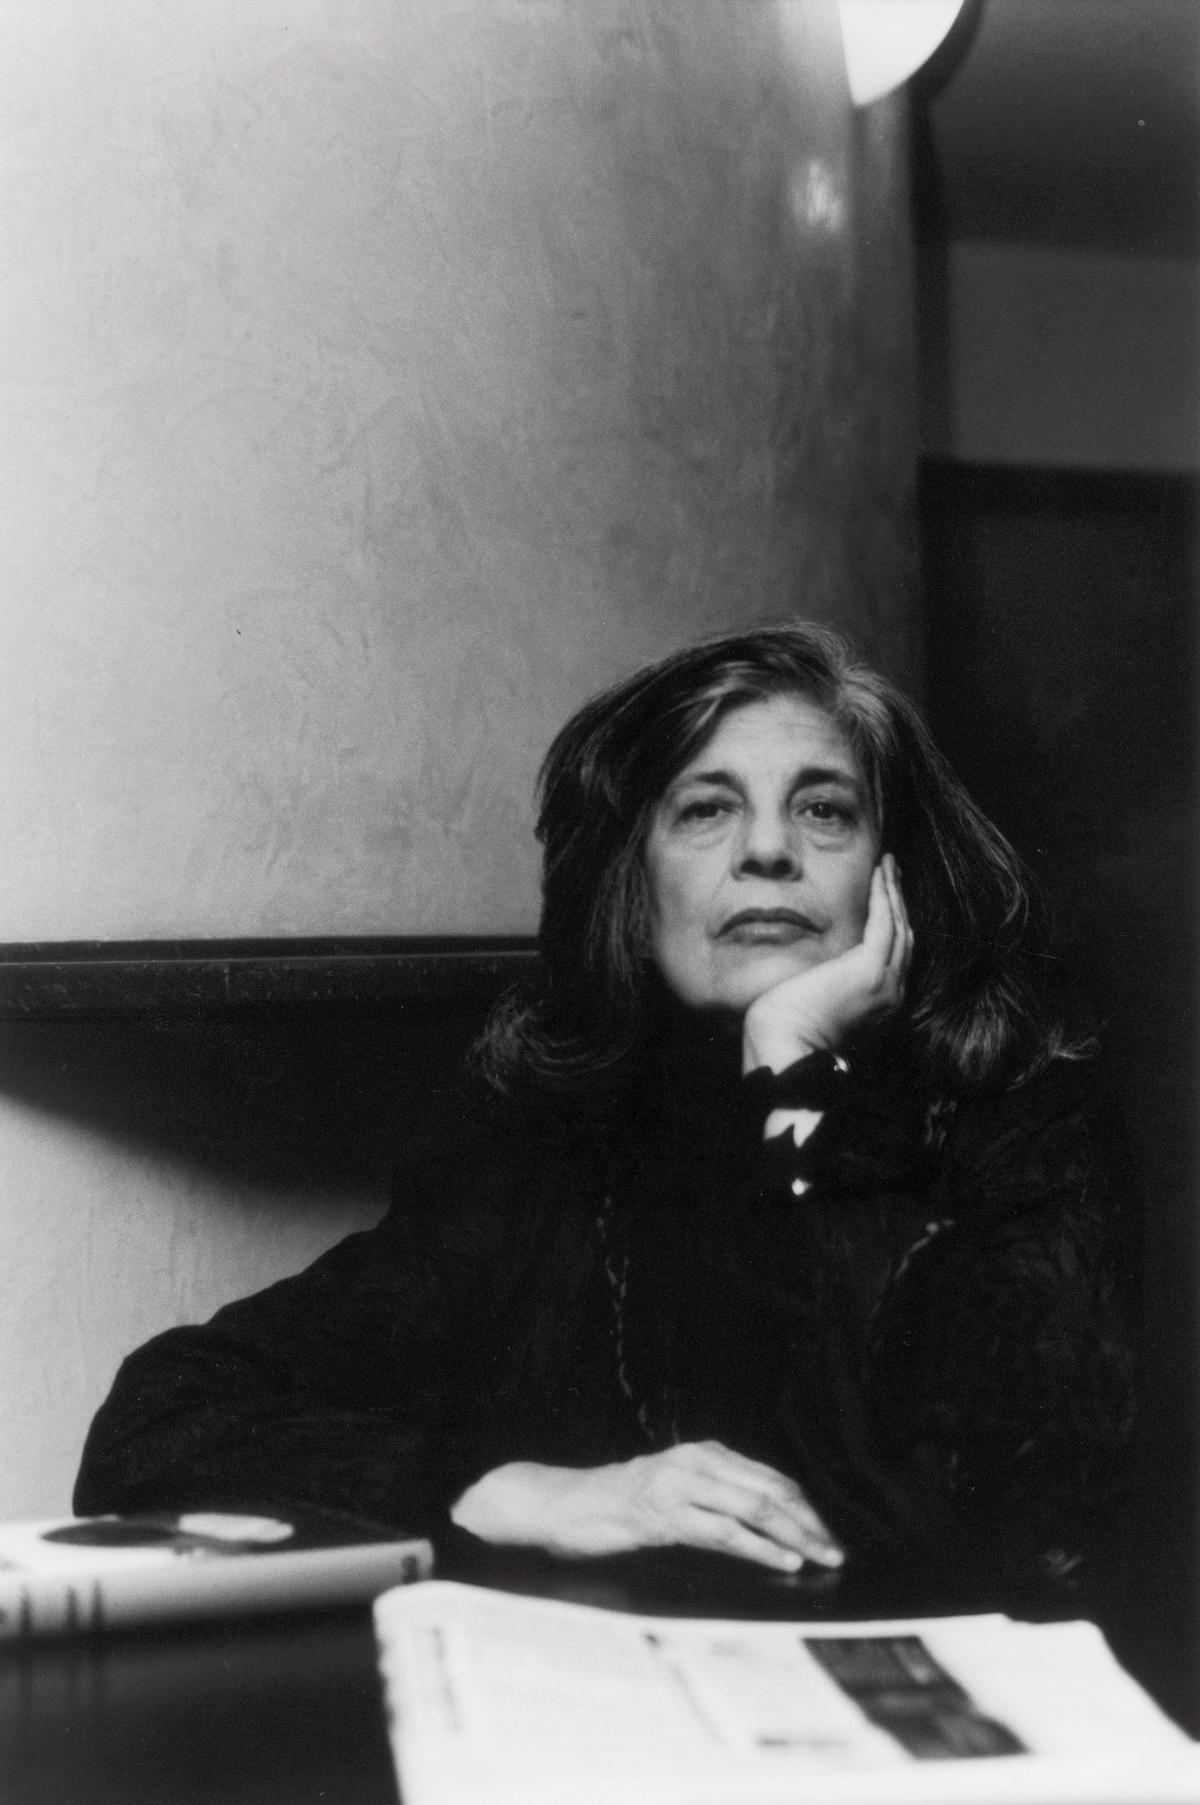 Sontag resting her chin in her hand, seated at a desk